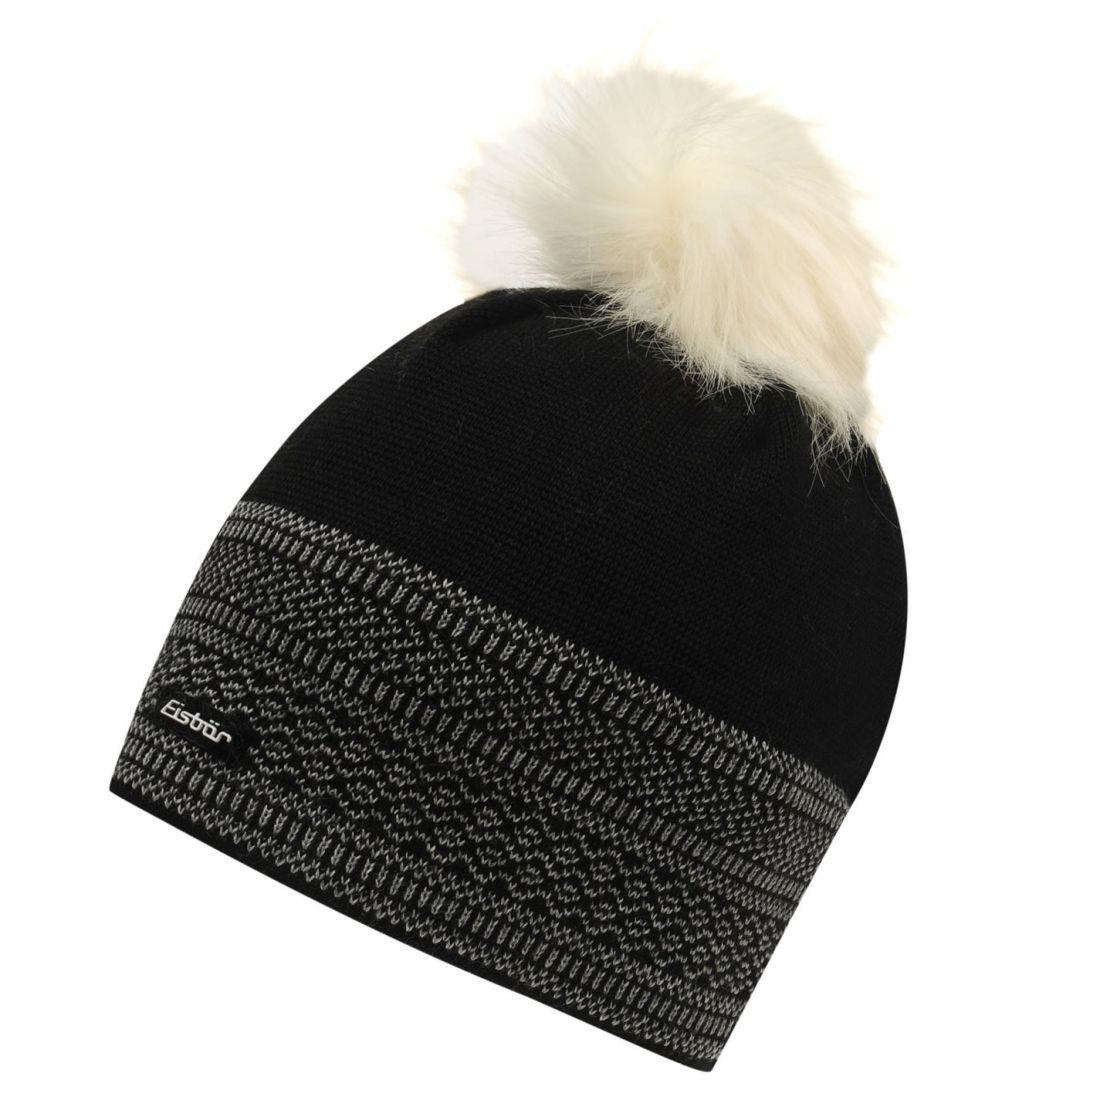 fdf7a0b2 Image is loading Eisbar-Merit-Beanie-Ladies-Stretch-Faux-Fur